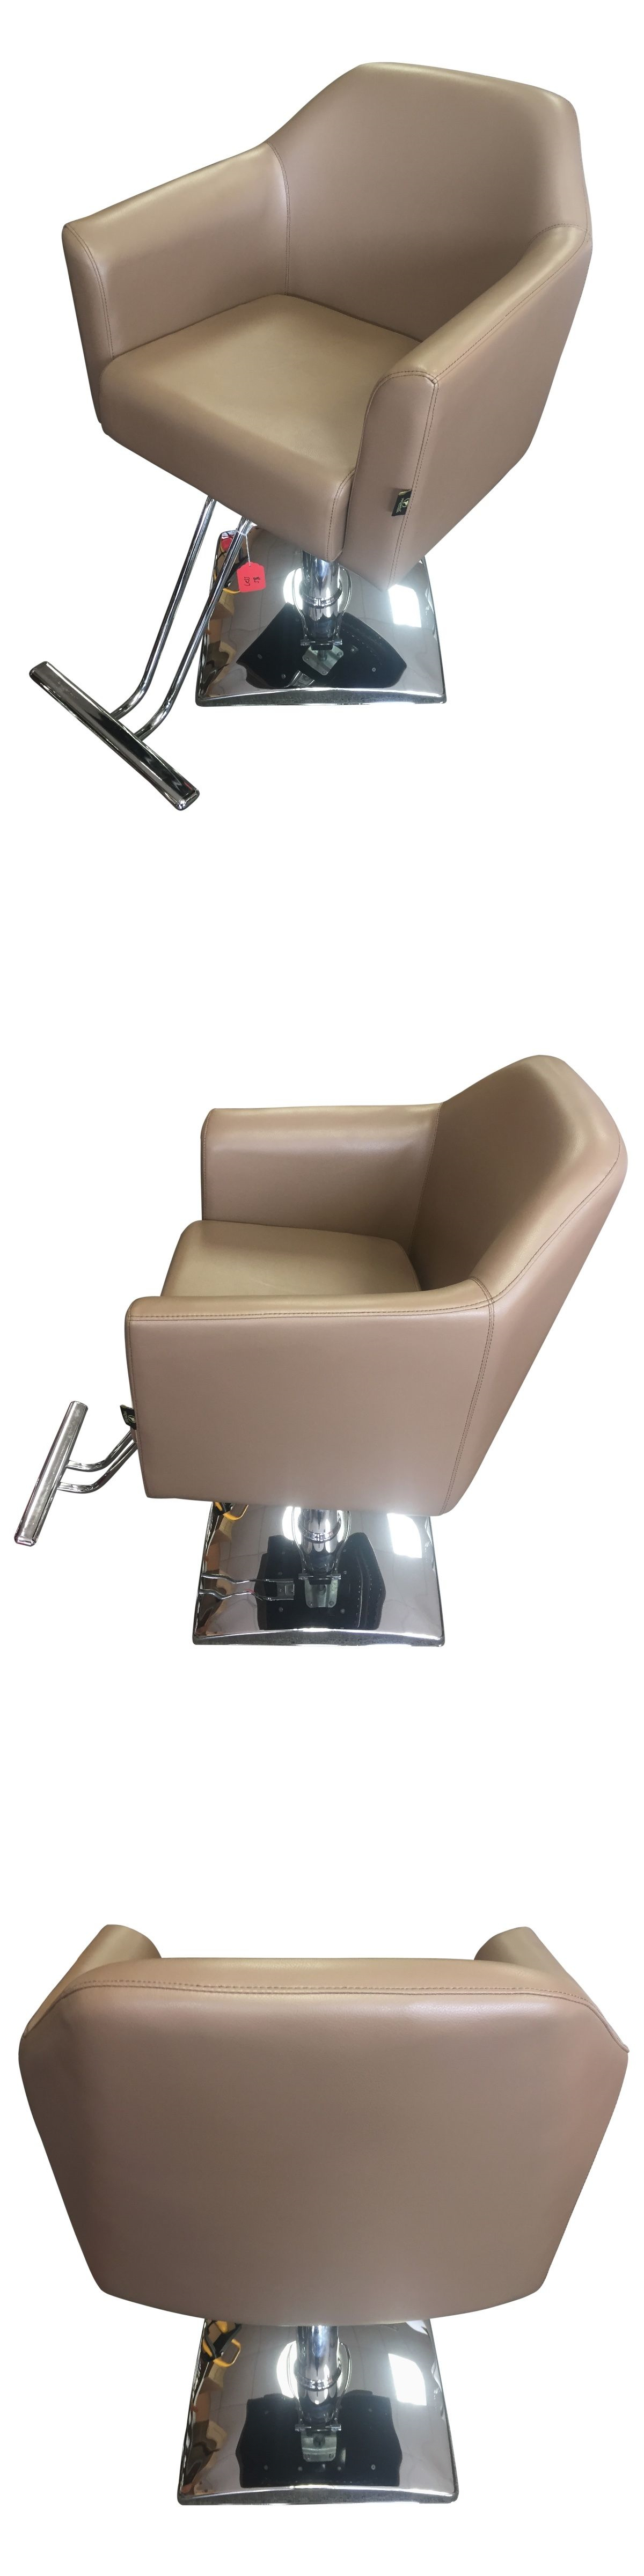 Salon Chairs and Dryers Chloe Beauty Styling Chair BUY IT NOW